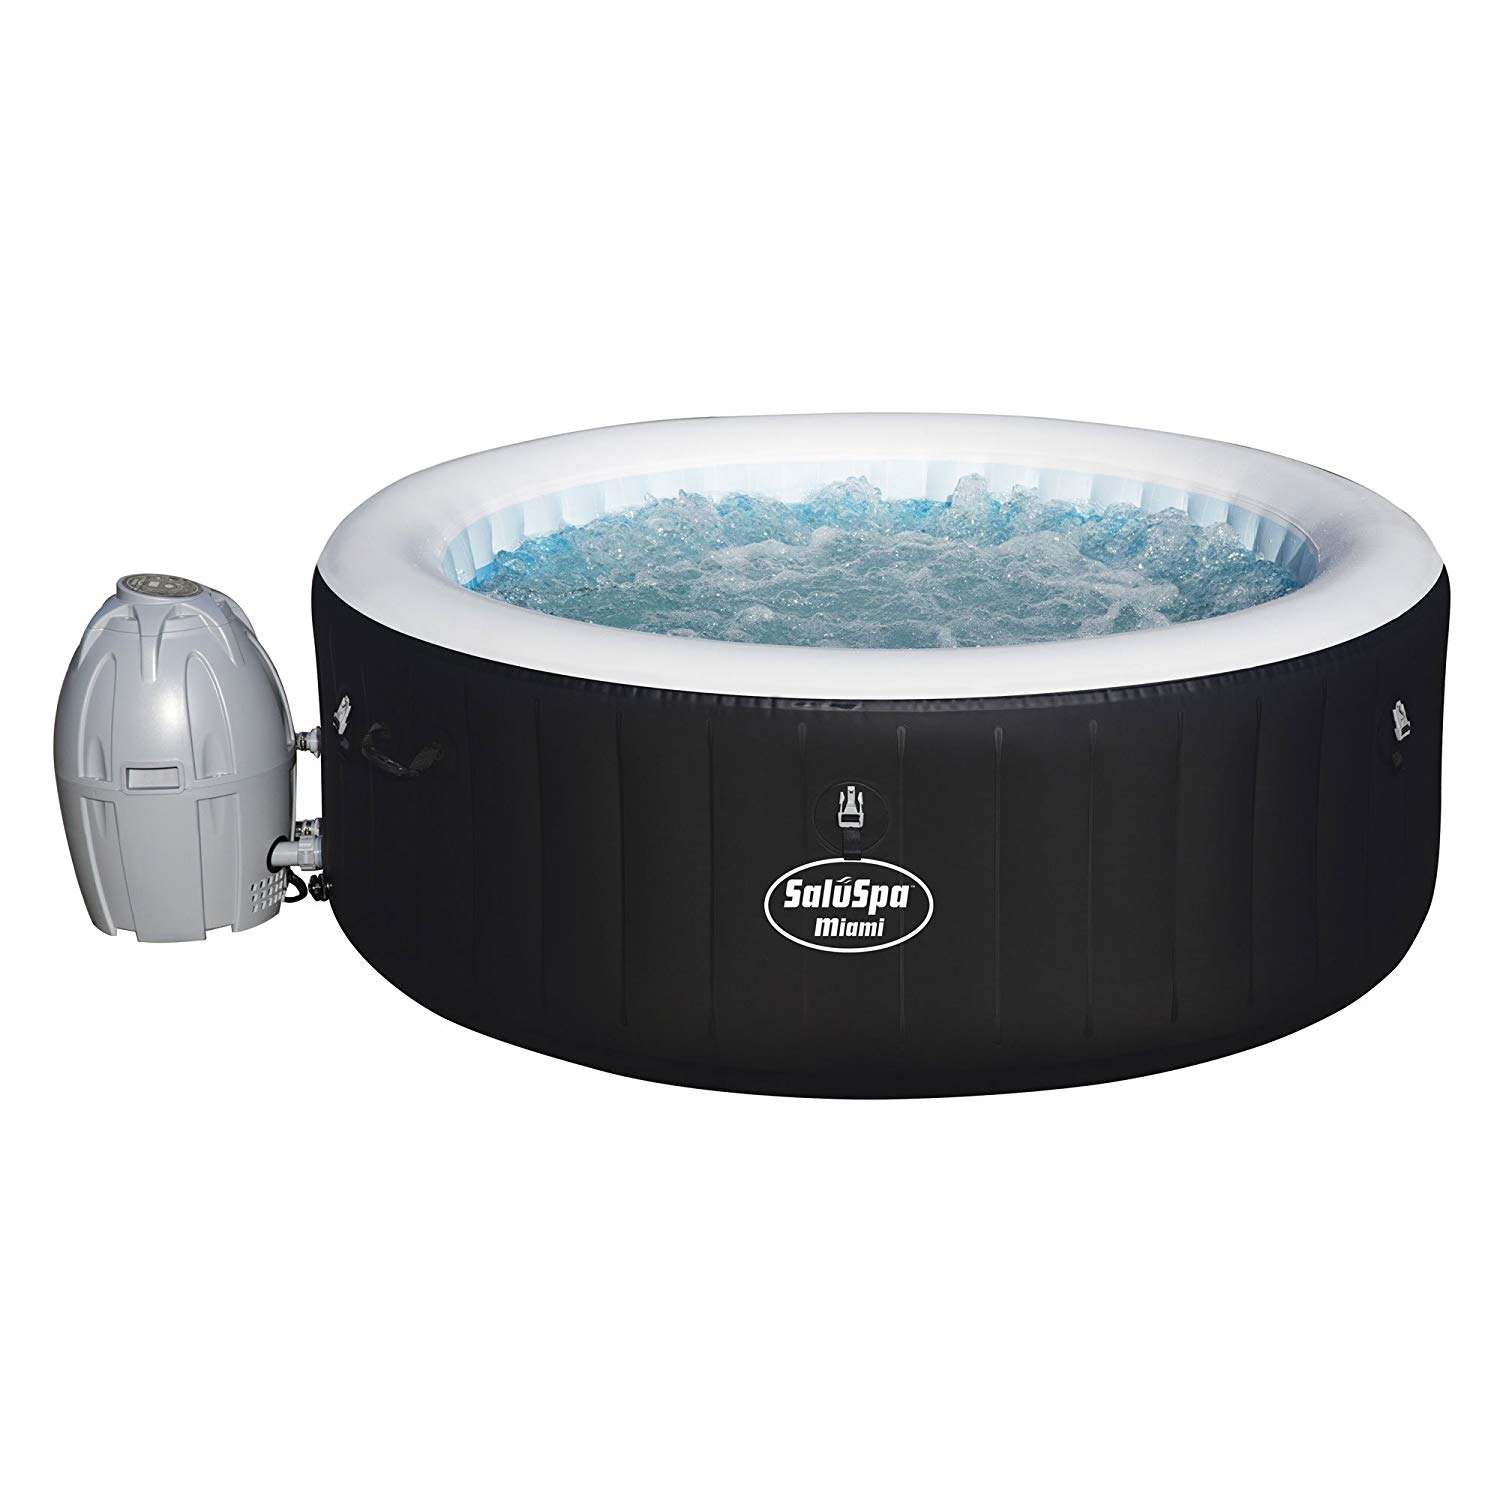 Bestway SaluSpa - Inflatable Hot Tubs